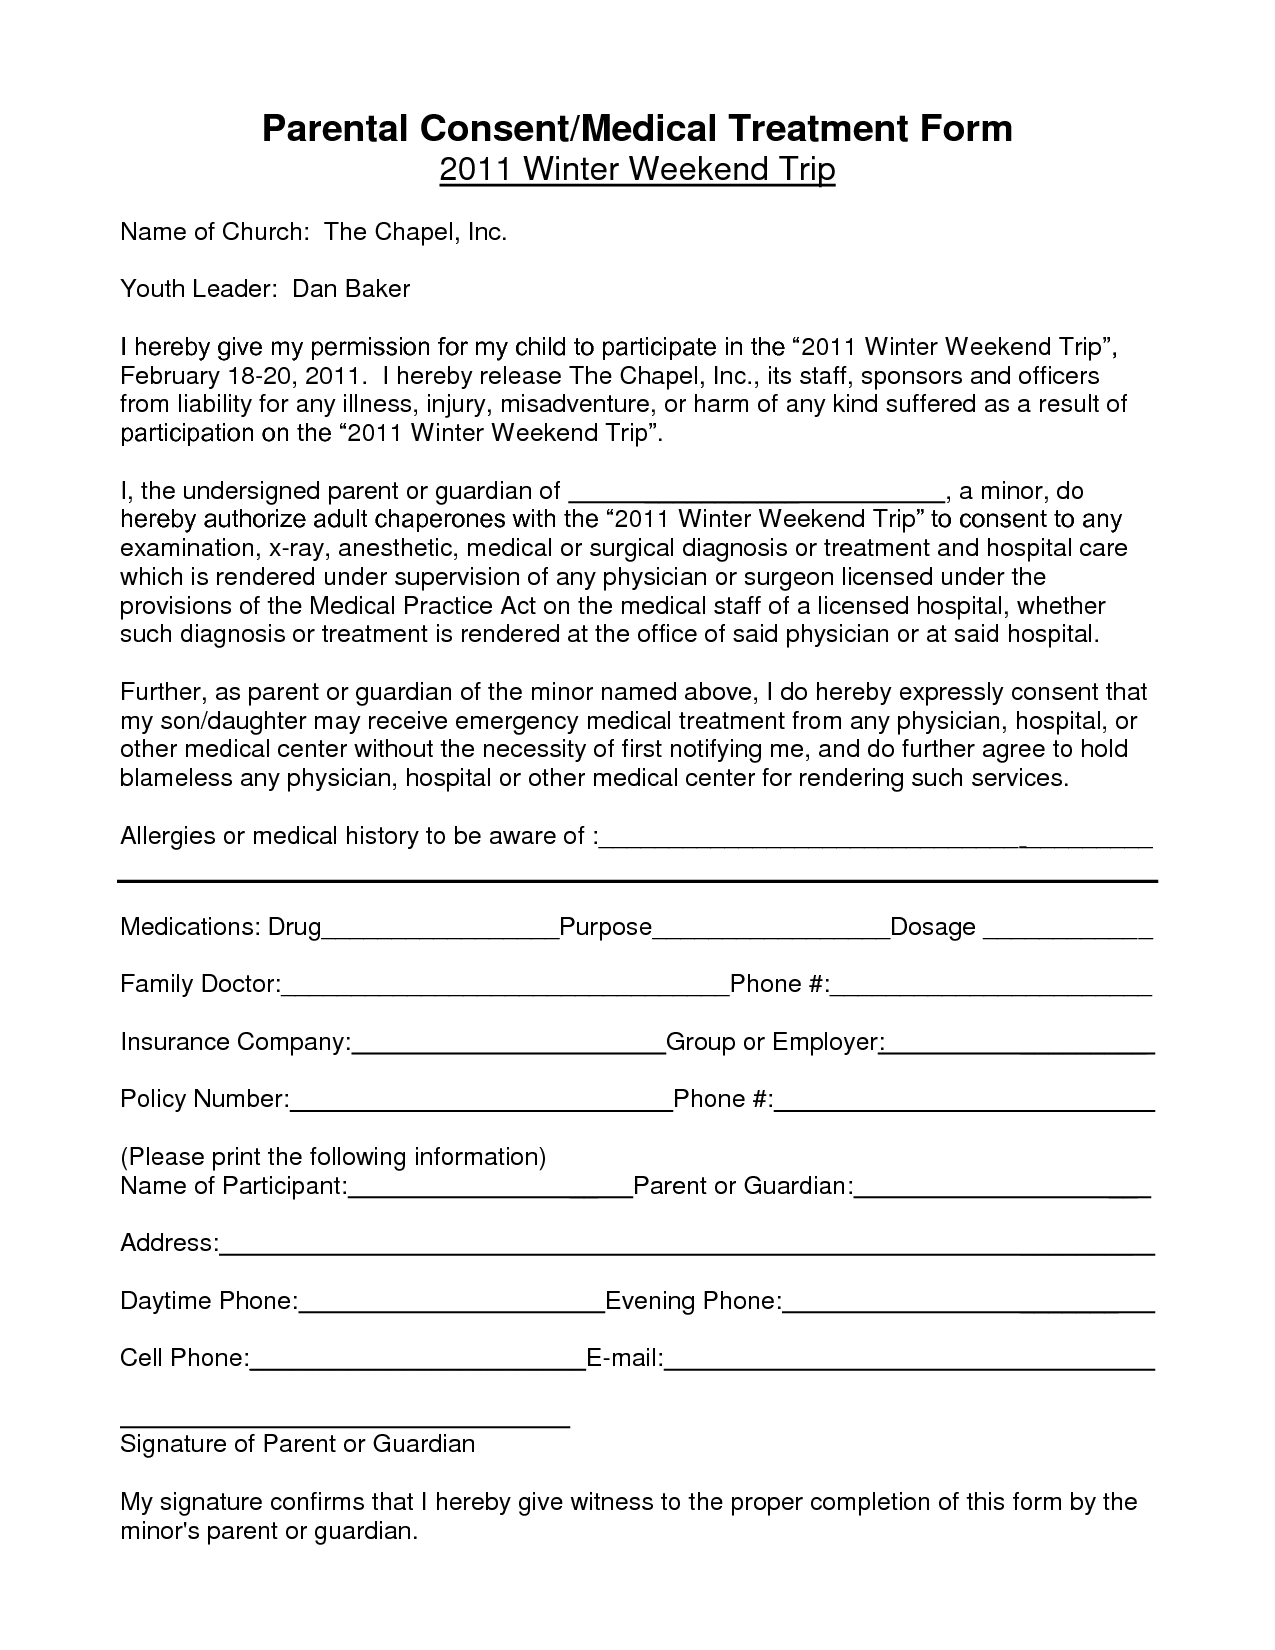 Free Child Medical Consent Form christmas wish list printable – Free Child Medical Consent Form